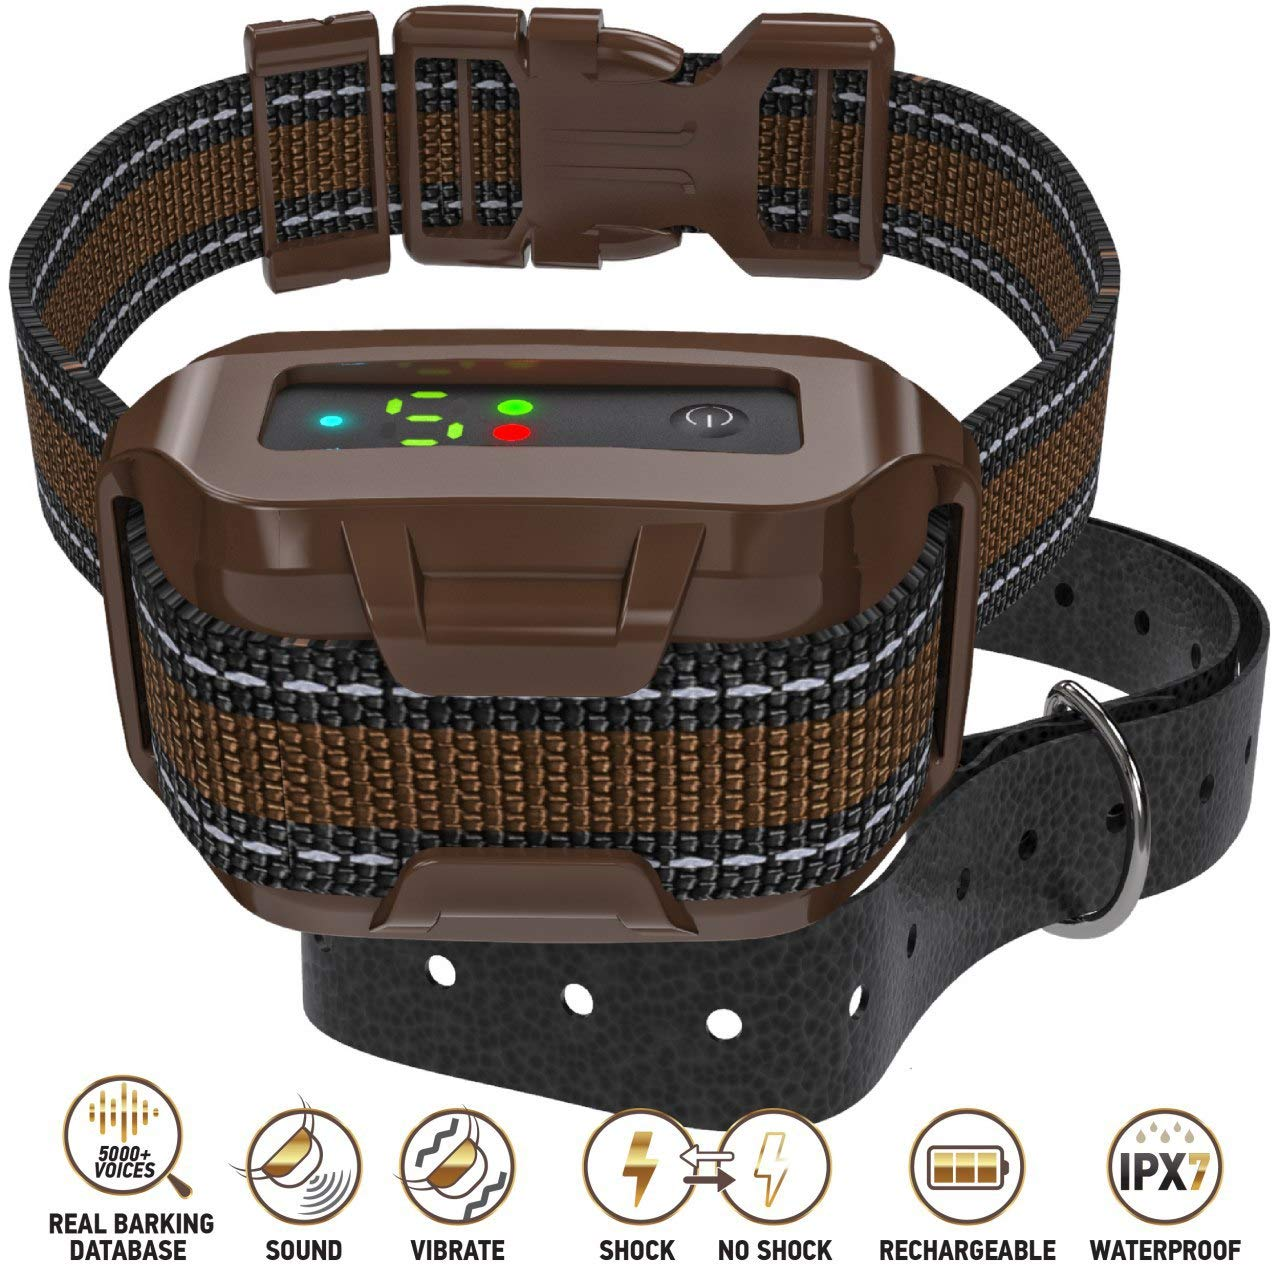 Q7 Pro - Professional Bark Collar Rechargeable, New Microprocessor Smart Detection Module with Three Anti-Barking Modes: Beep/Vibration/Shock for Small, Medium, Large Dogs All Breeds - IPx7 Waterproof